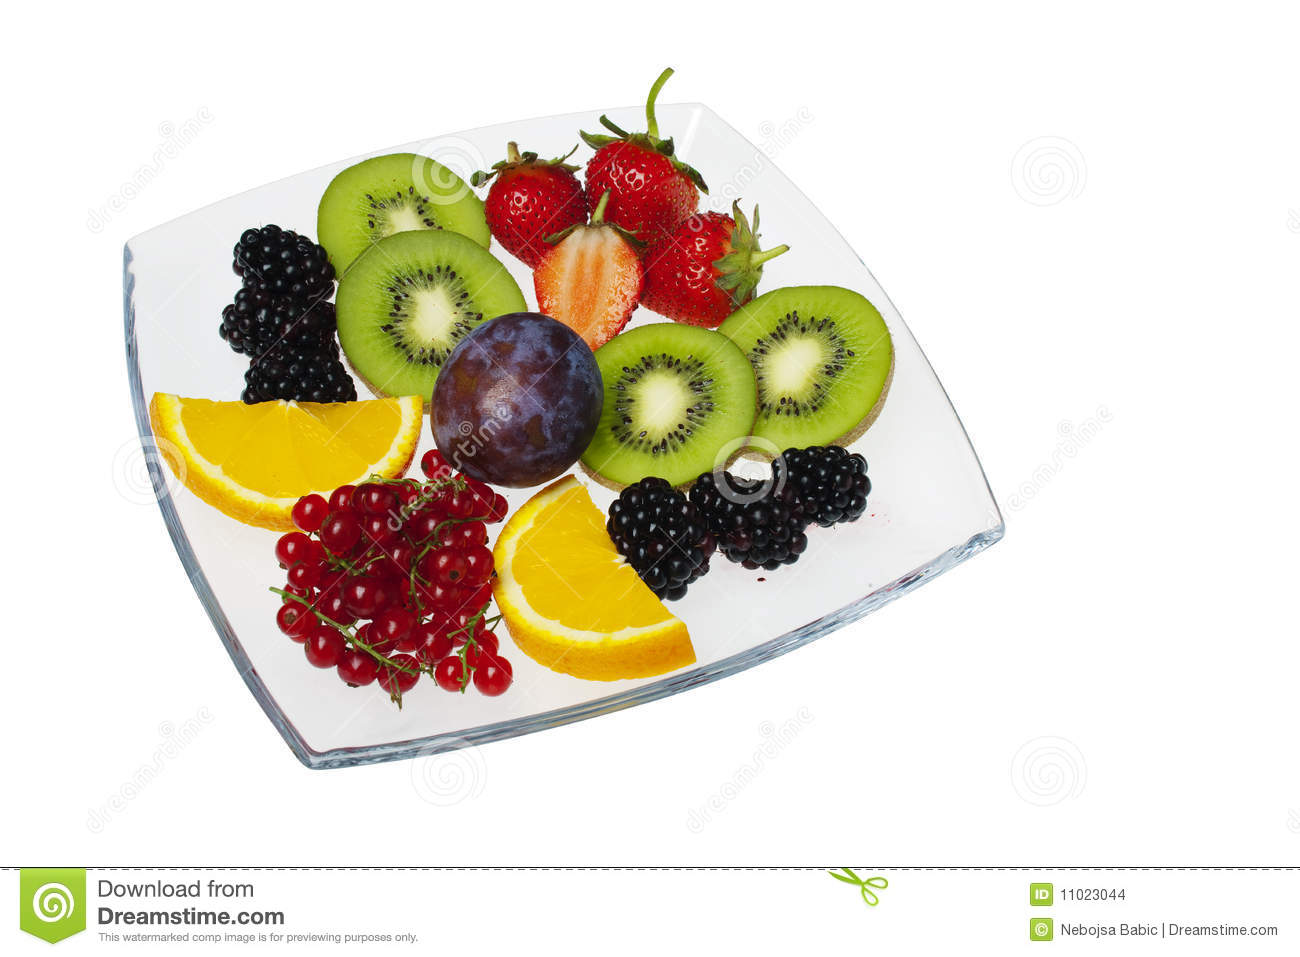 How To Make Fruit Trays At Home